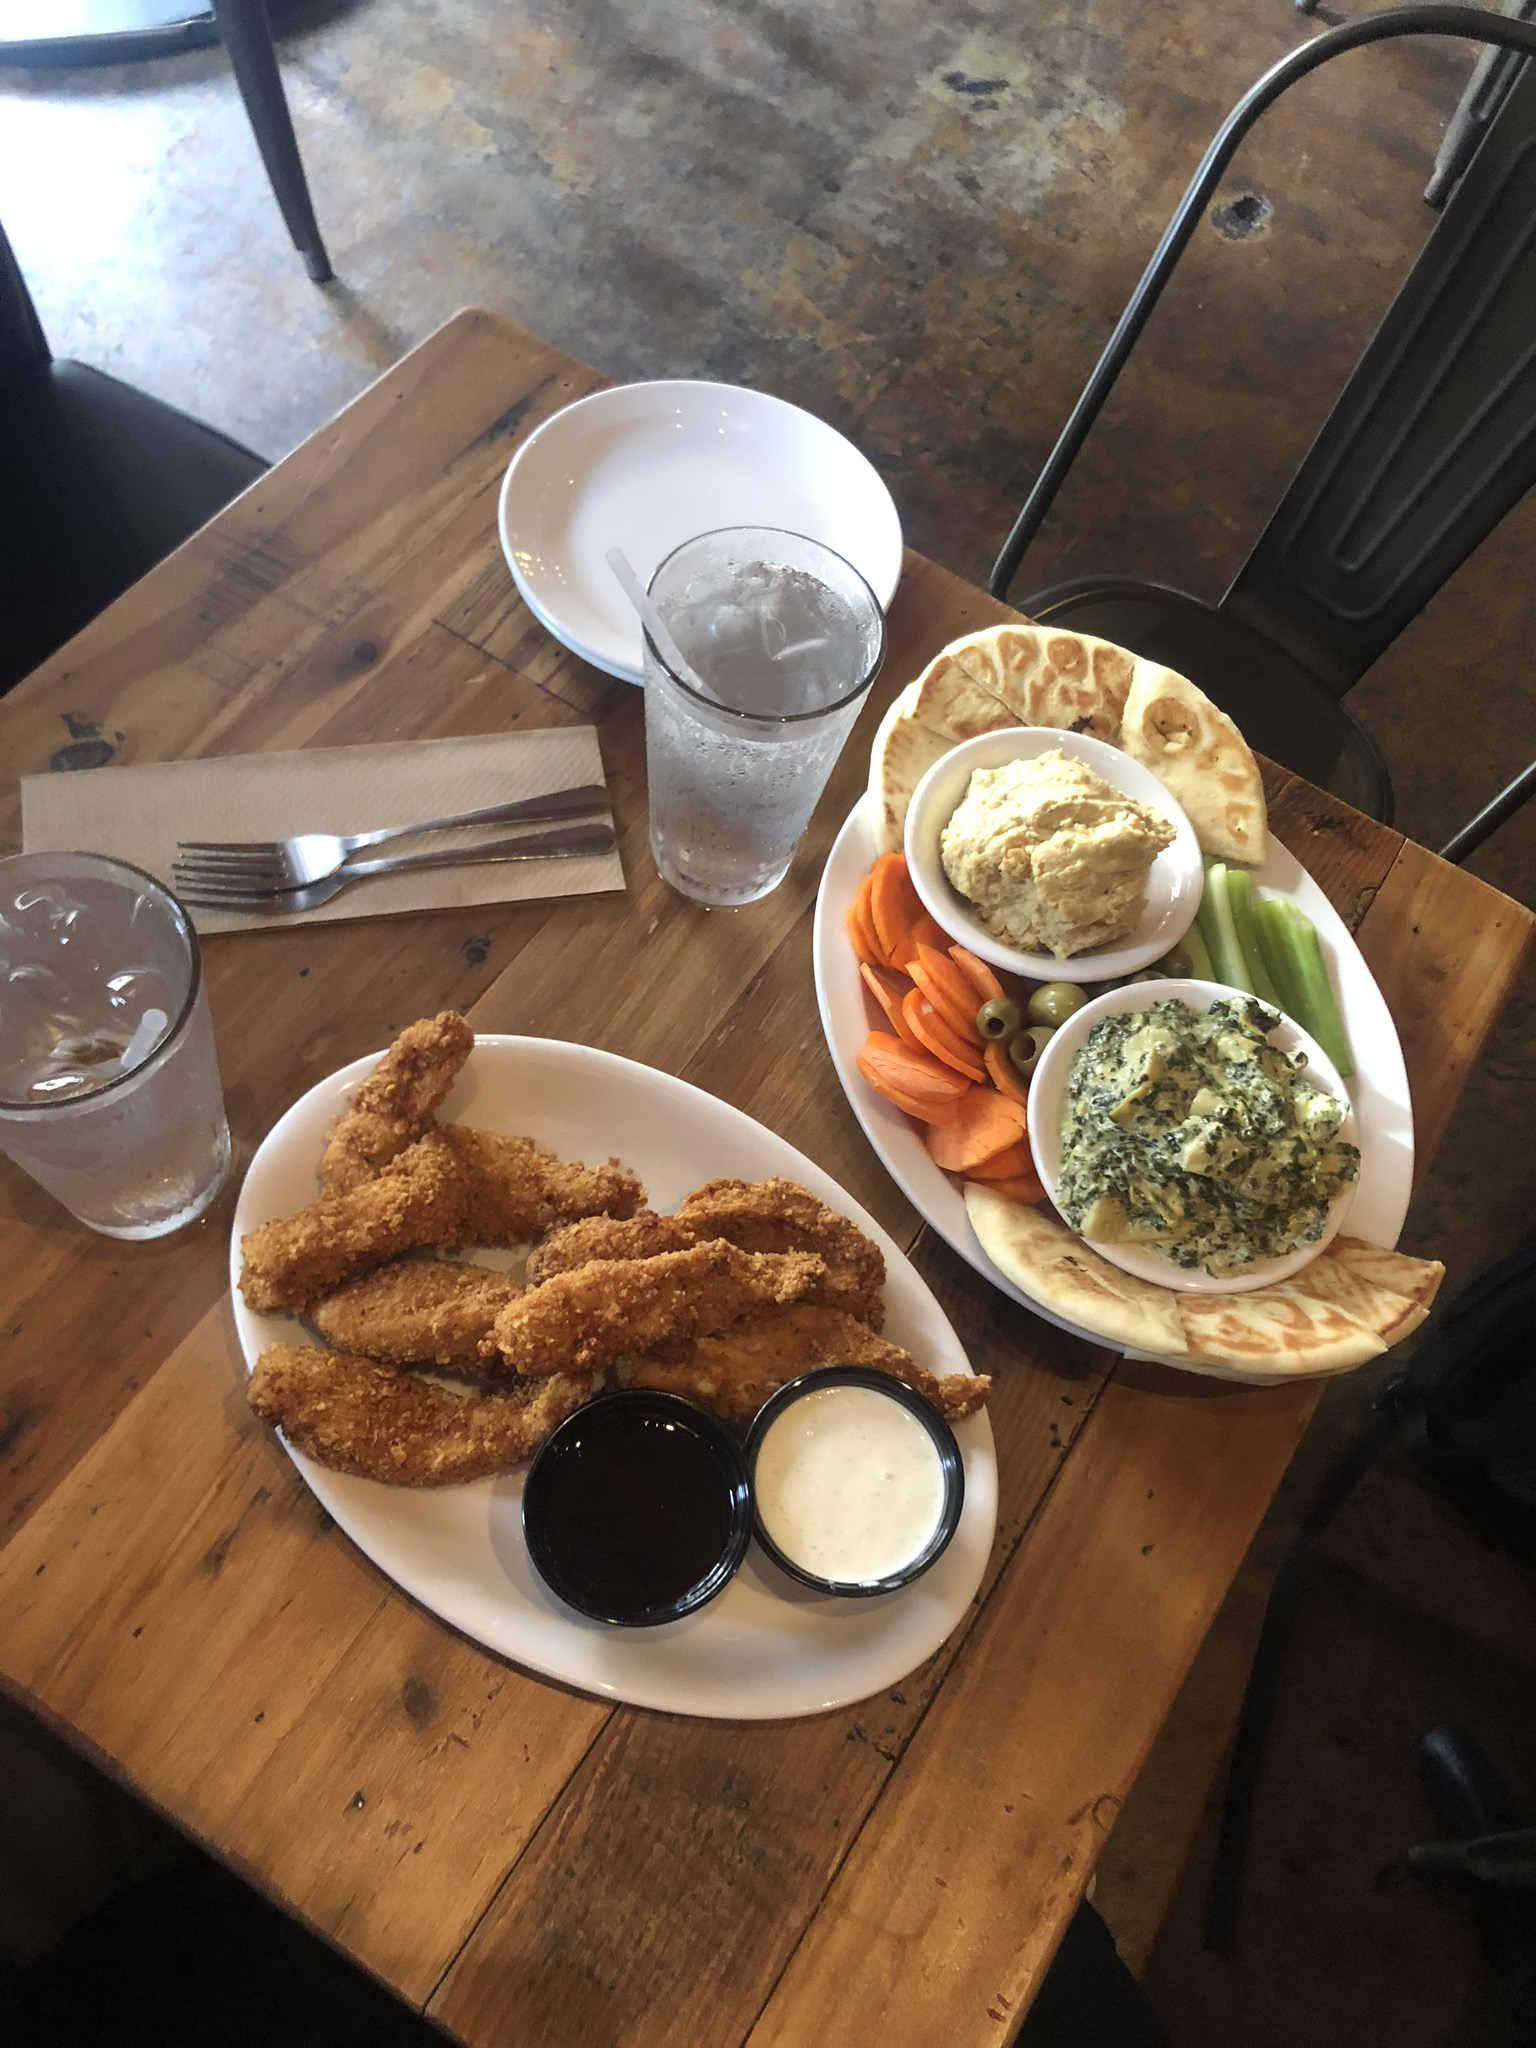 New Am Chicken Tenders and Club Med Appetizers